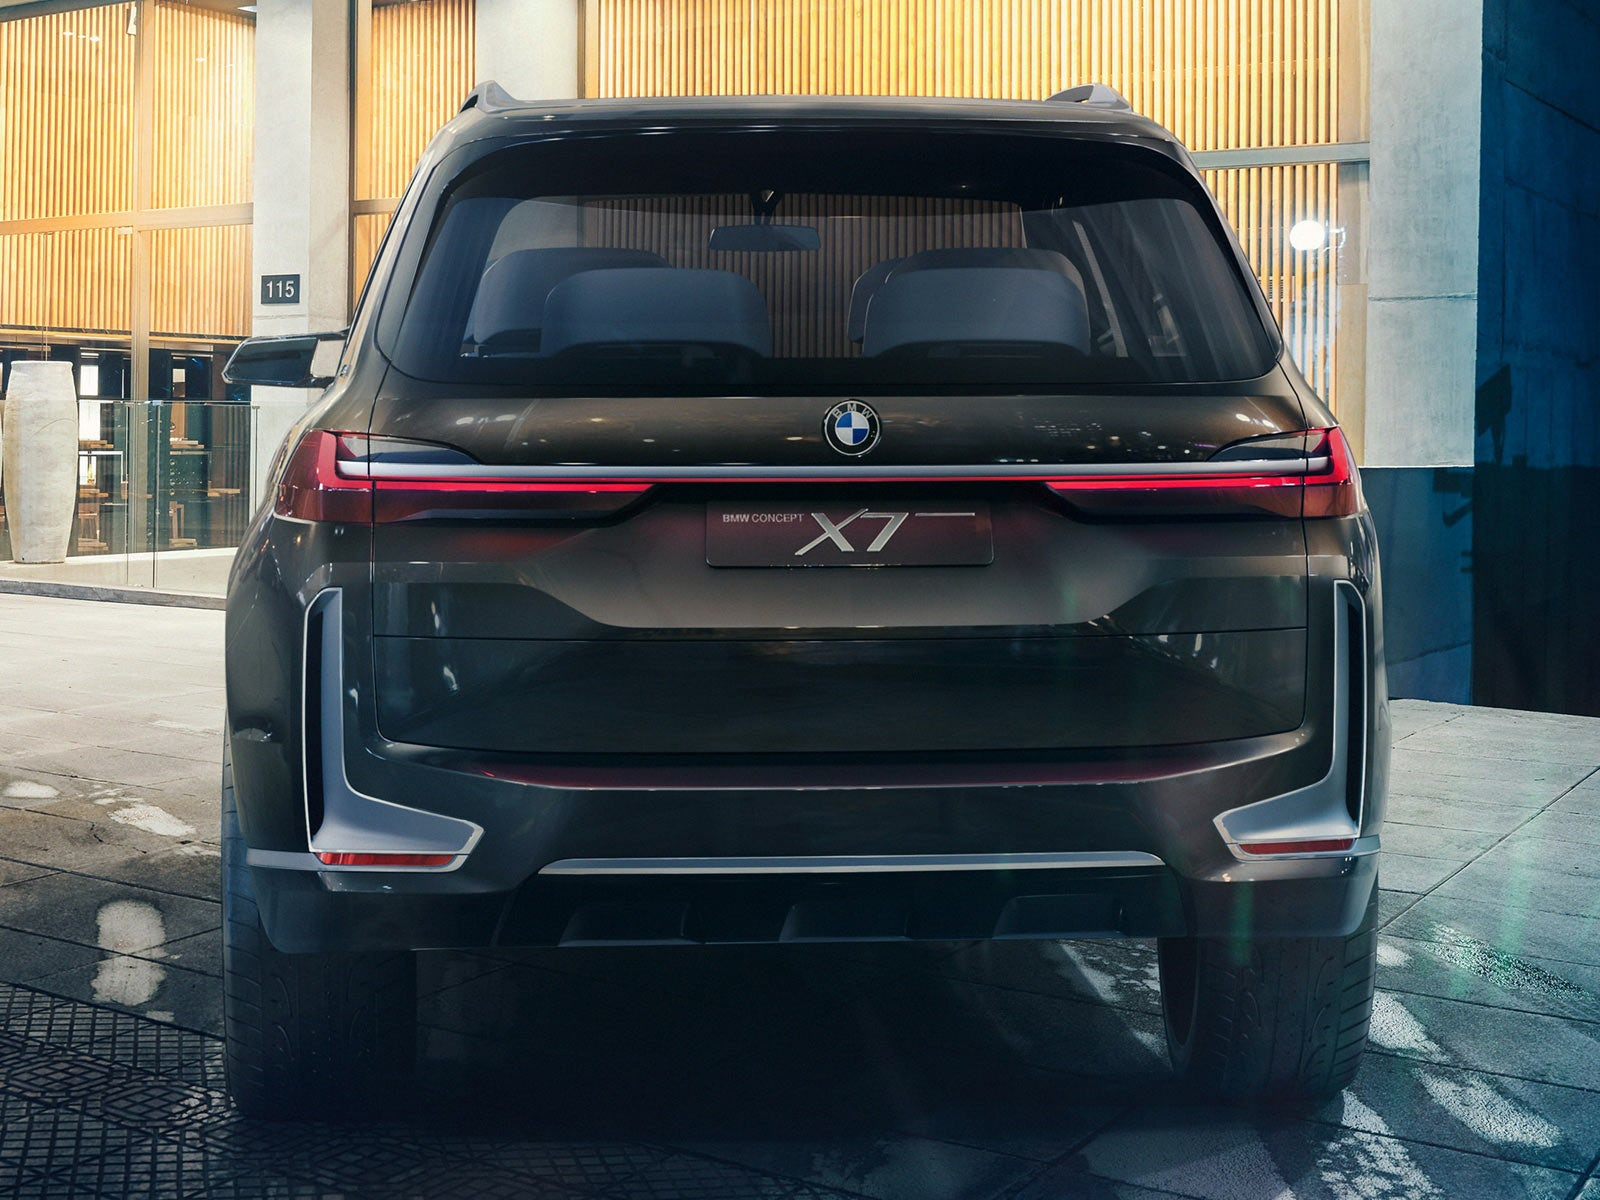 2018 BMW X7 Rear Angle Pictures Style Large SUVS